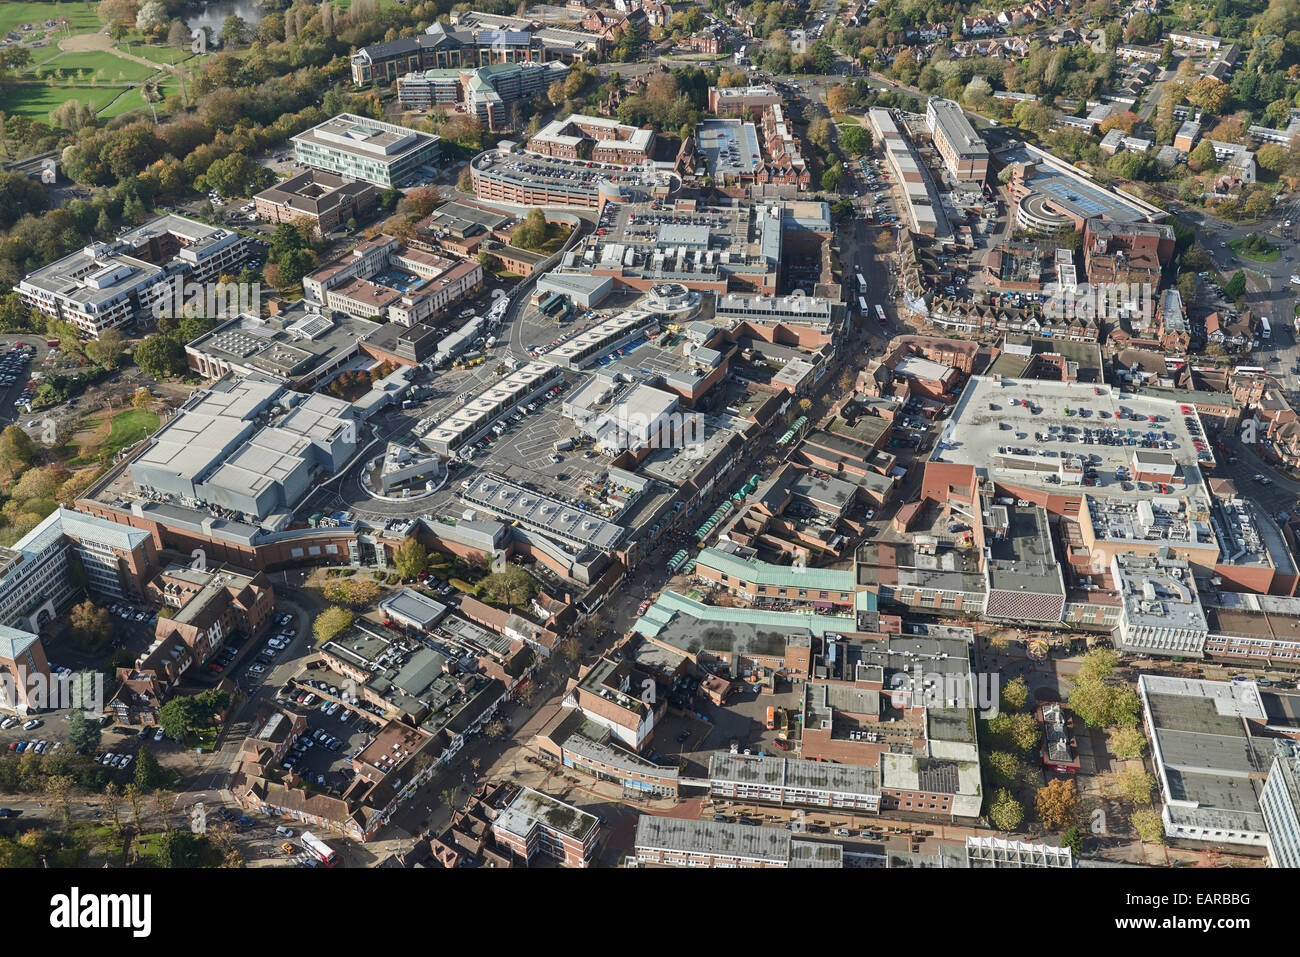 An aerial view of the centre of Solihull, a town in the West Midlands - Stock Image